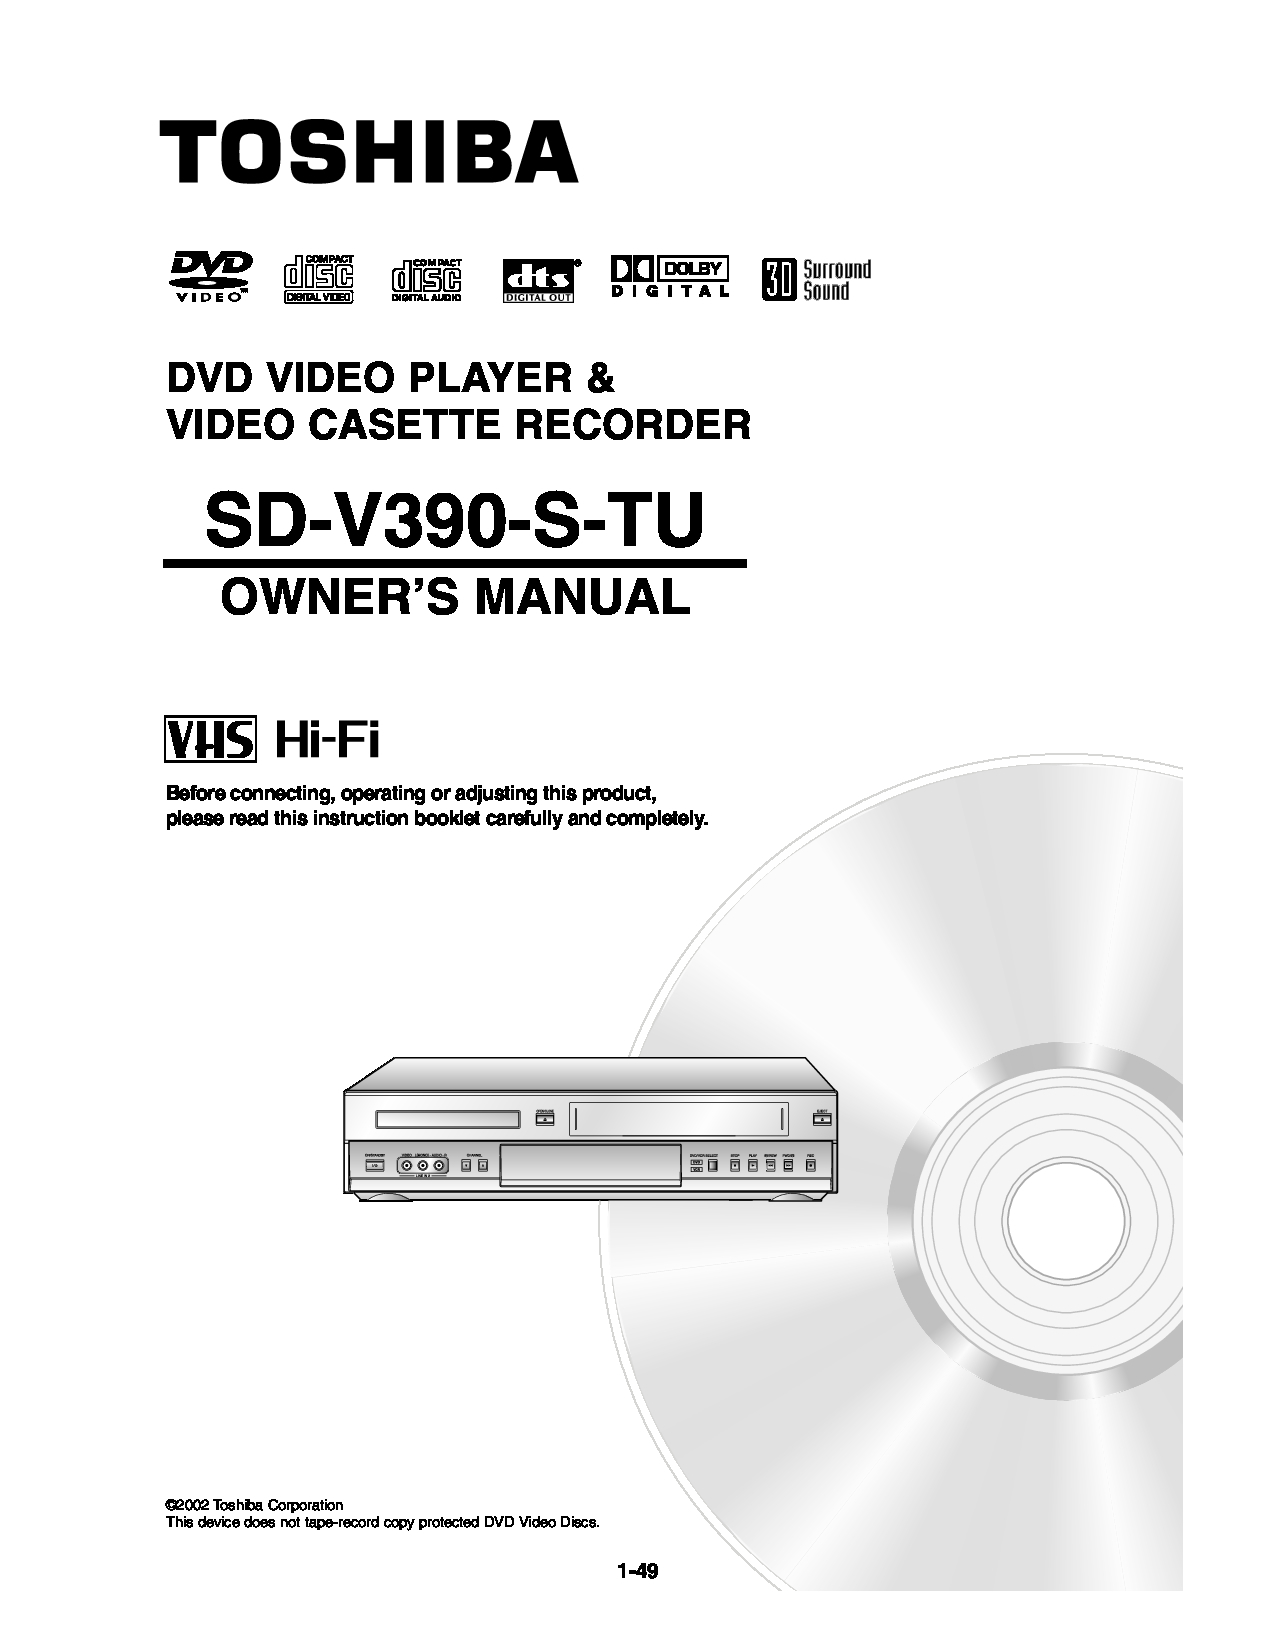 Toshiba SD-V390-S-TU Manual